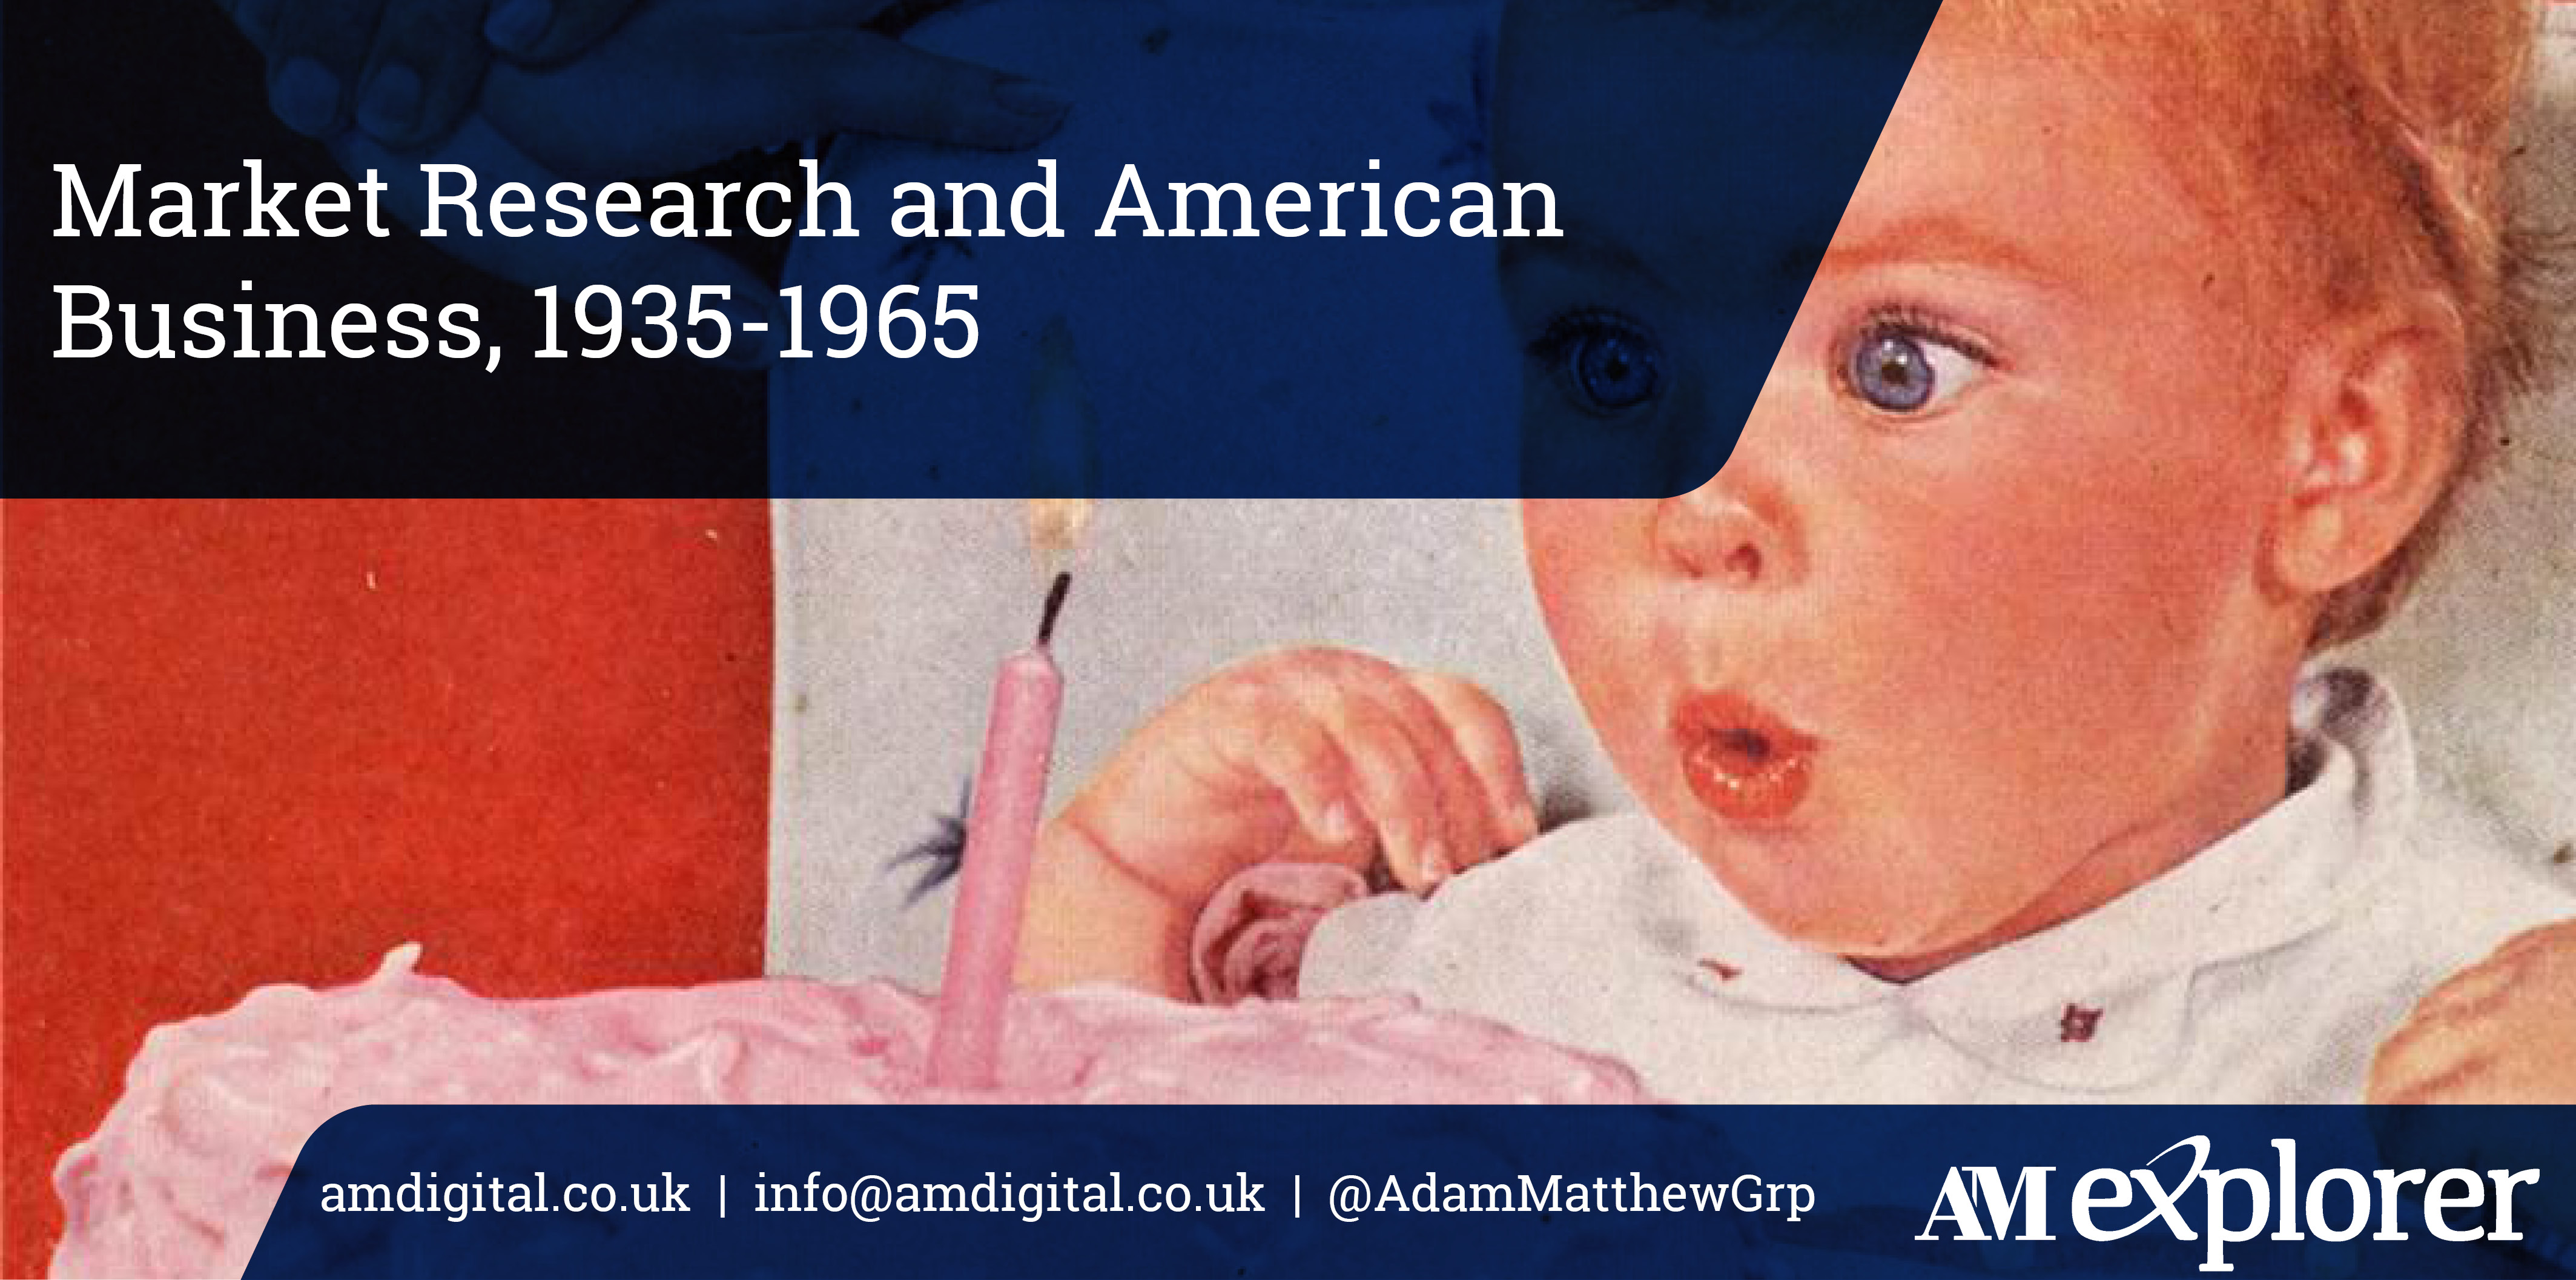 Image from Market Research and American Business, 1935 - 1965 database